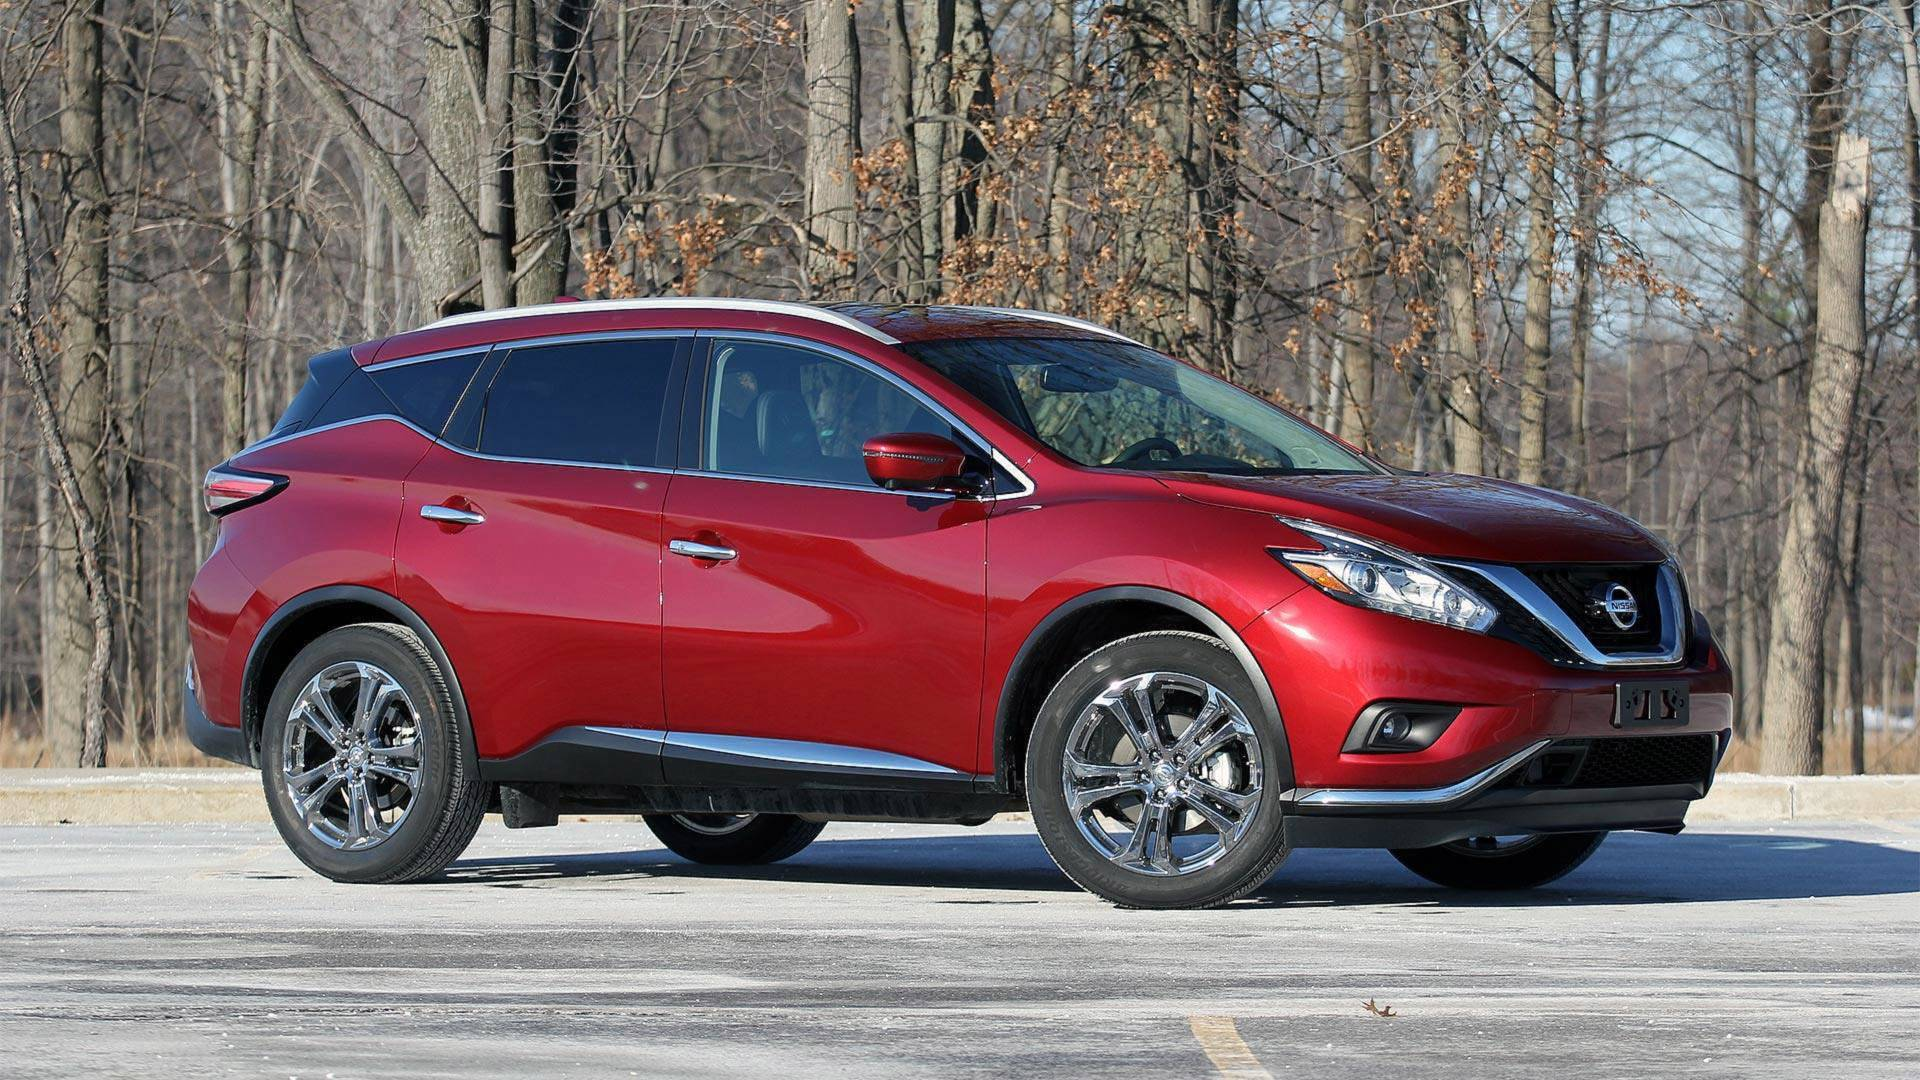 dating.com reviews 2016 best suv ratings